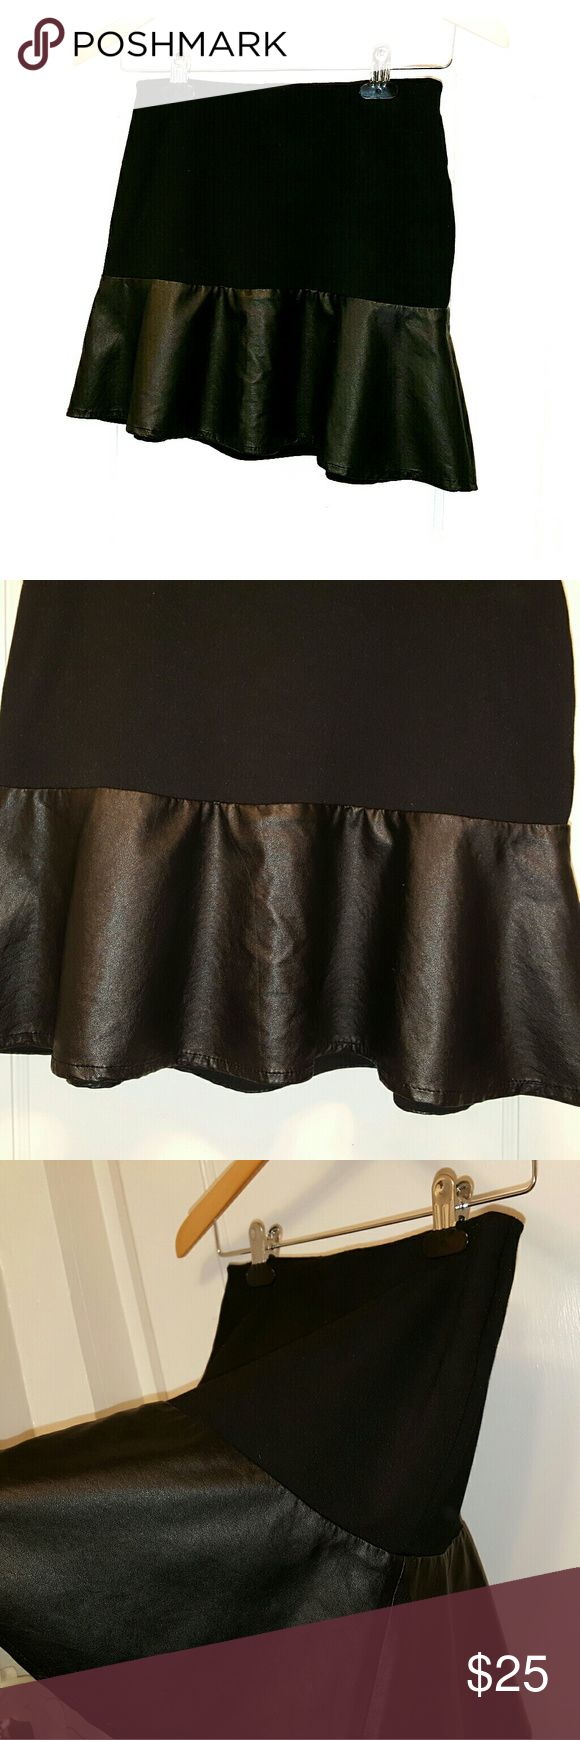 Sally Miller blk knit and faux leather mini NWOT This skirt is a size XL in GIRLS, but I find it fits just like and XS 0/2. NWOT.  Never worn,  only tried on.  I just have so many similar skirts.  Lol.  Black mini skirt with comfortable stretch waistband and knit like top portion,  with a free open,  ruffling faux leather panel at the bottom.  By Sally Miller. Sally Miller Skirts Mini